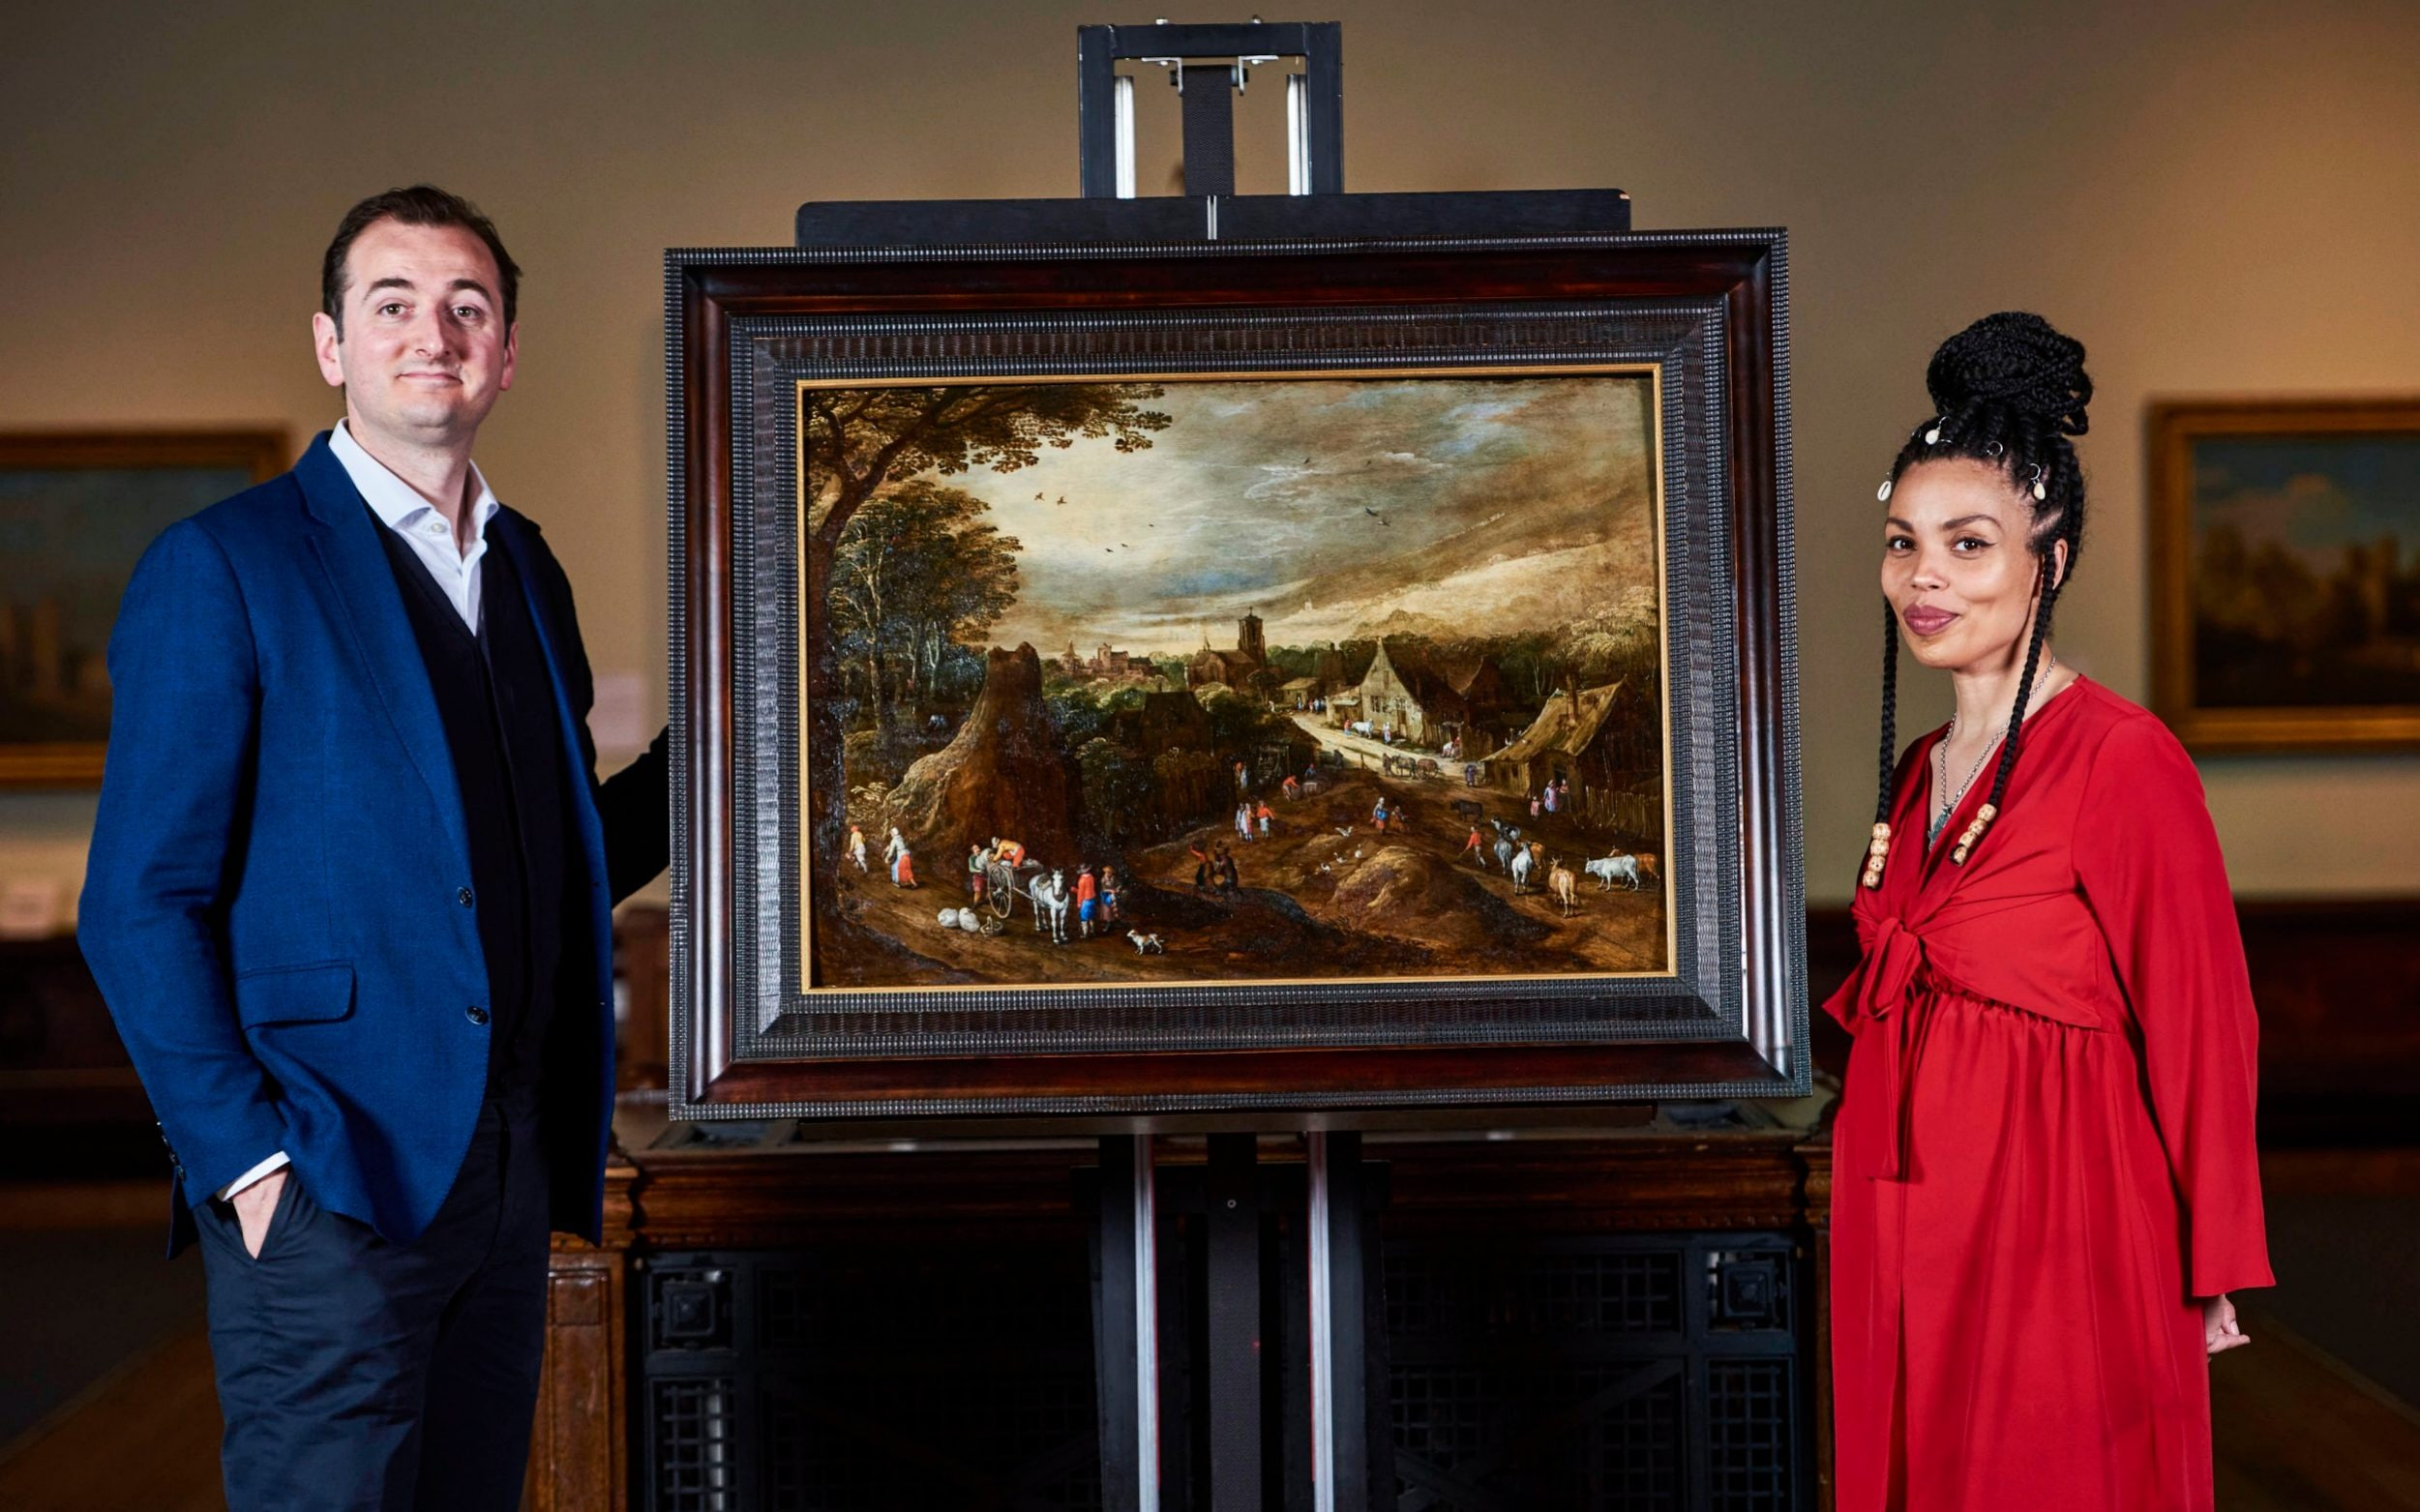 Lost masterpiece found broken in two in gallery storage, after BBC expert identified it from cow's backsides